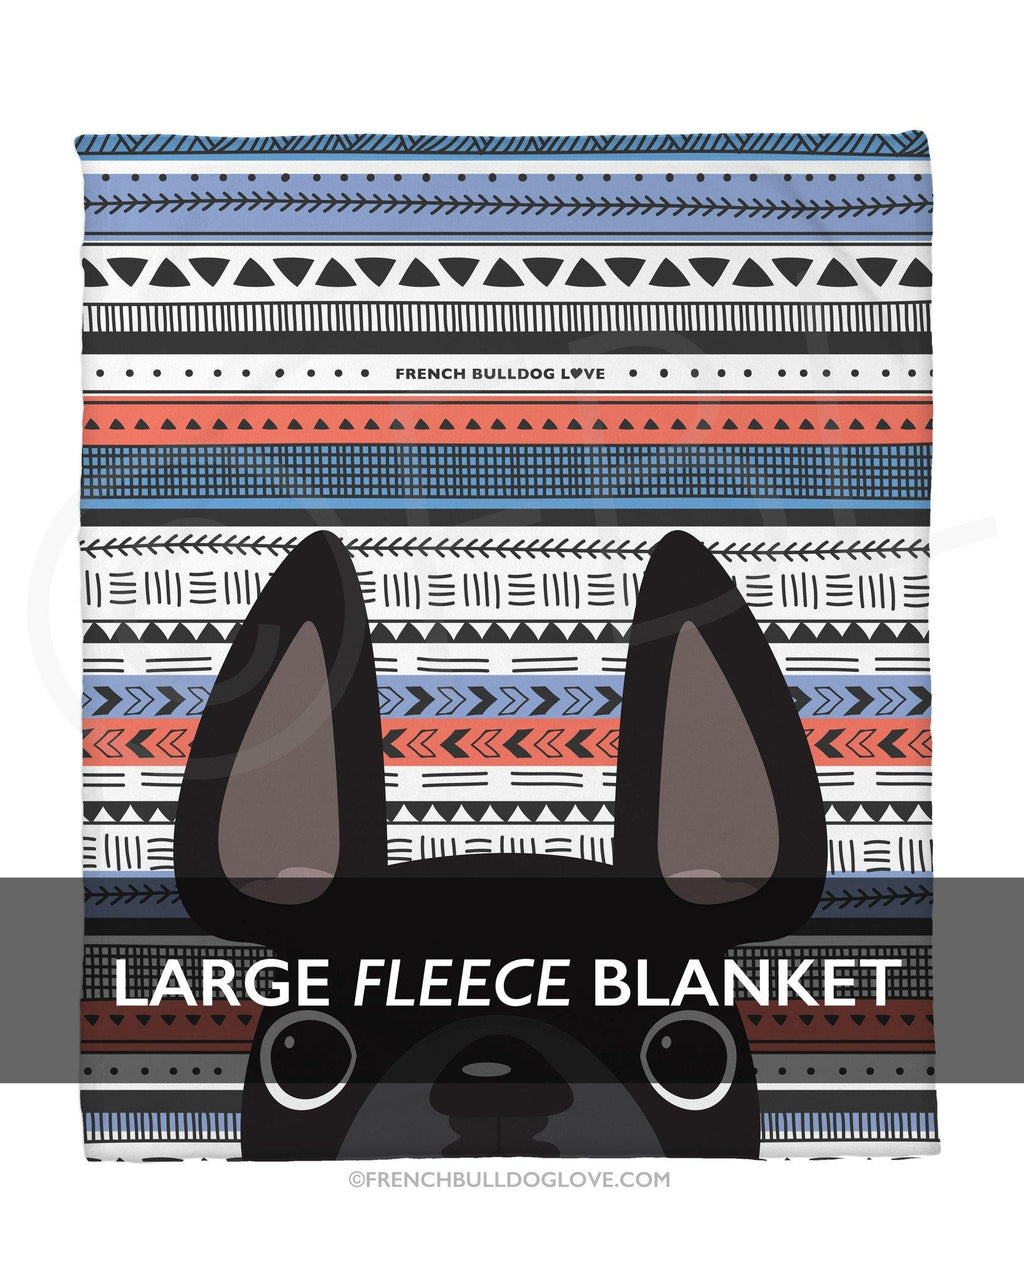 Black / Geometric French Bulldog Fleece Blanket - Large - French Bulldog Love